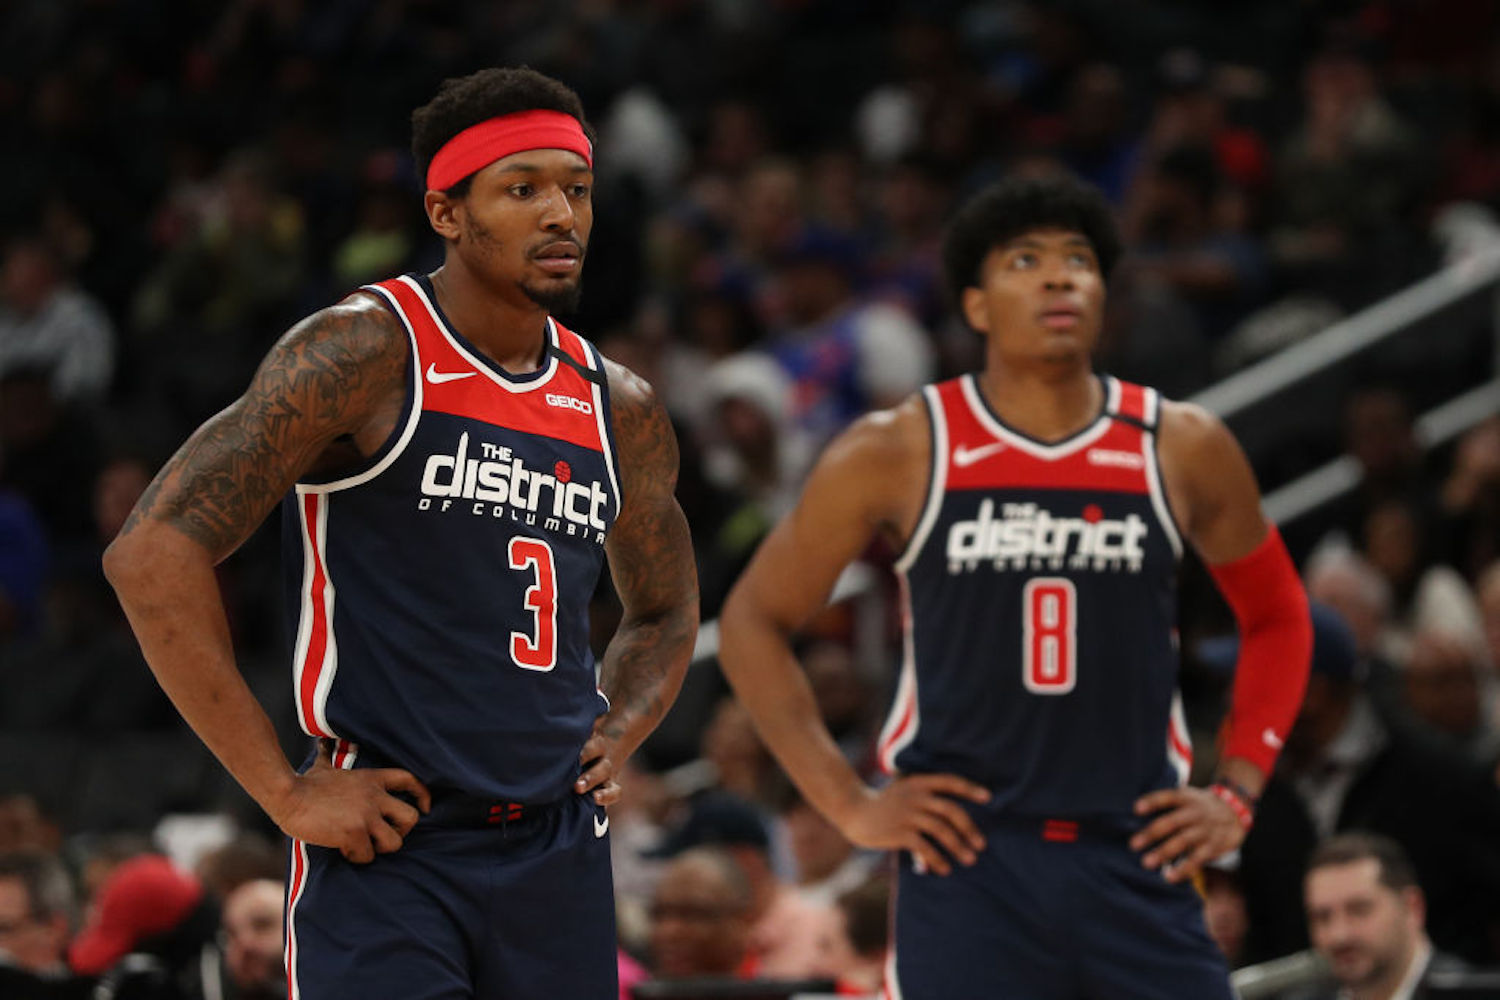 Bradley Beal was the most coveted trade asset this offseason, but more superstars landing on the trading block spells trouble for Beal and the Wizards.